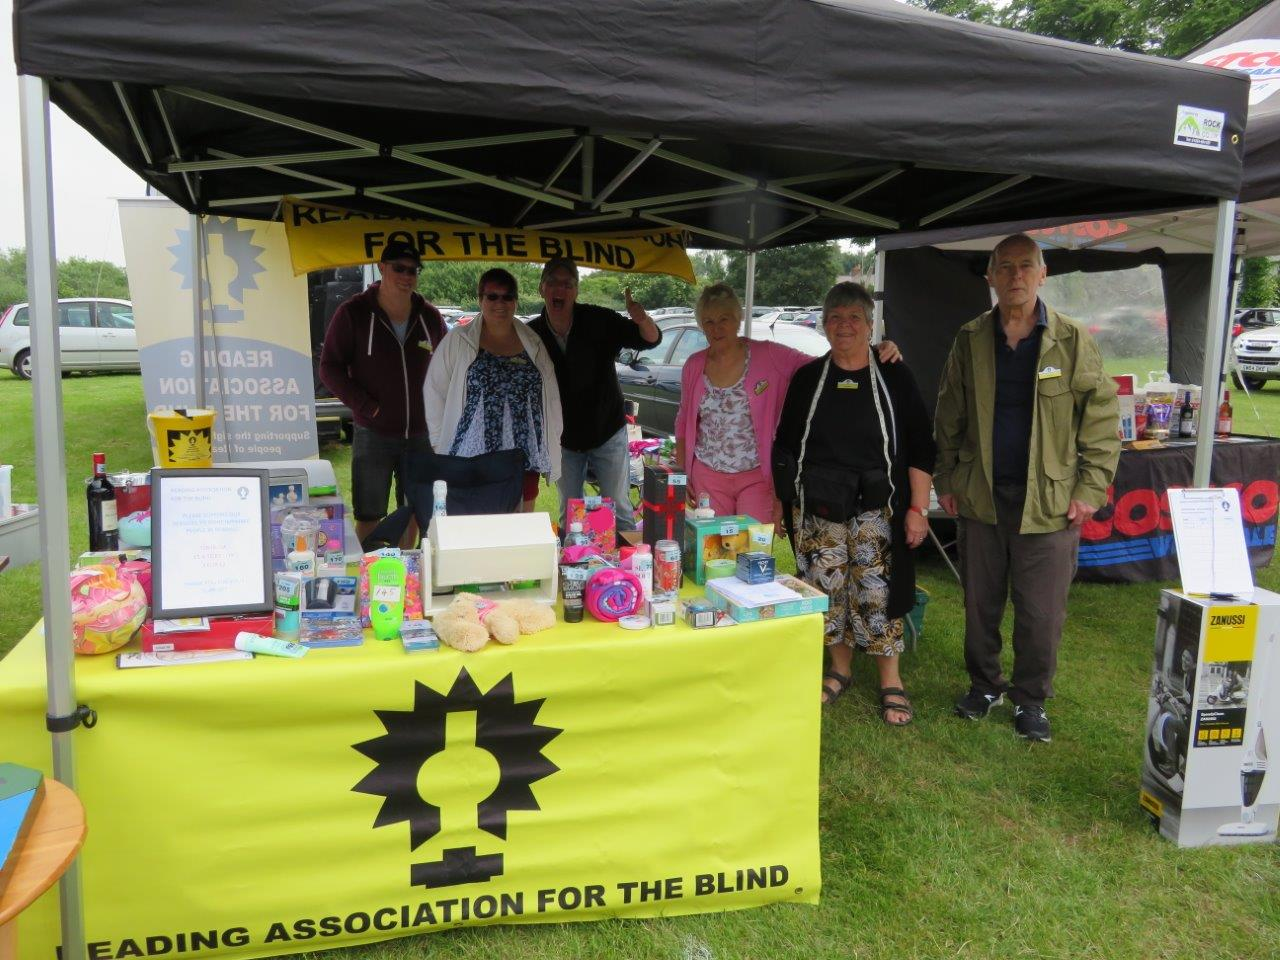 Photo of RAB's stall at the RBH fete